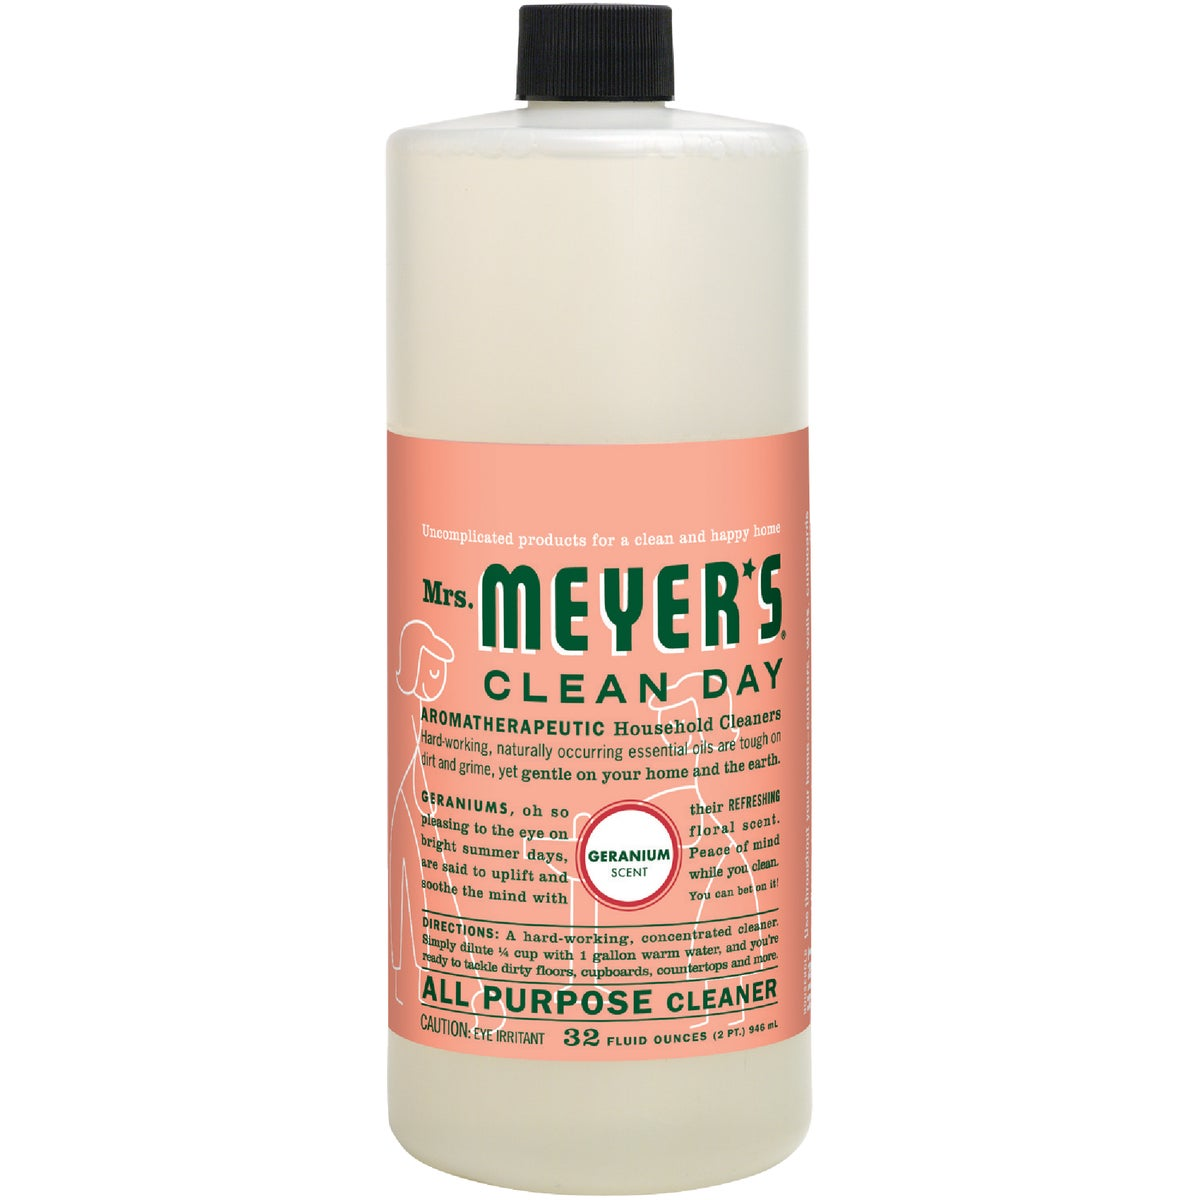 GERANIUM ALL PUR CLEANER - 13116 by Mrs Meyers Clean Day